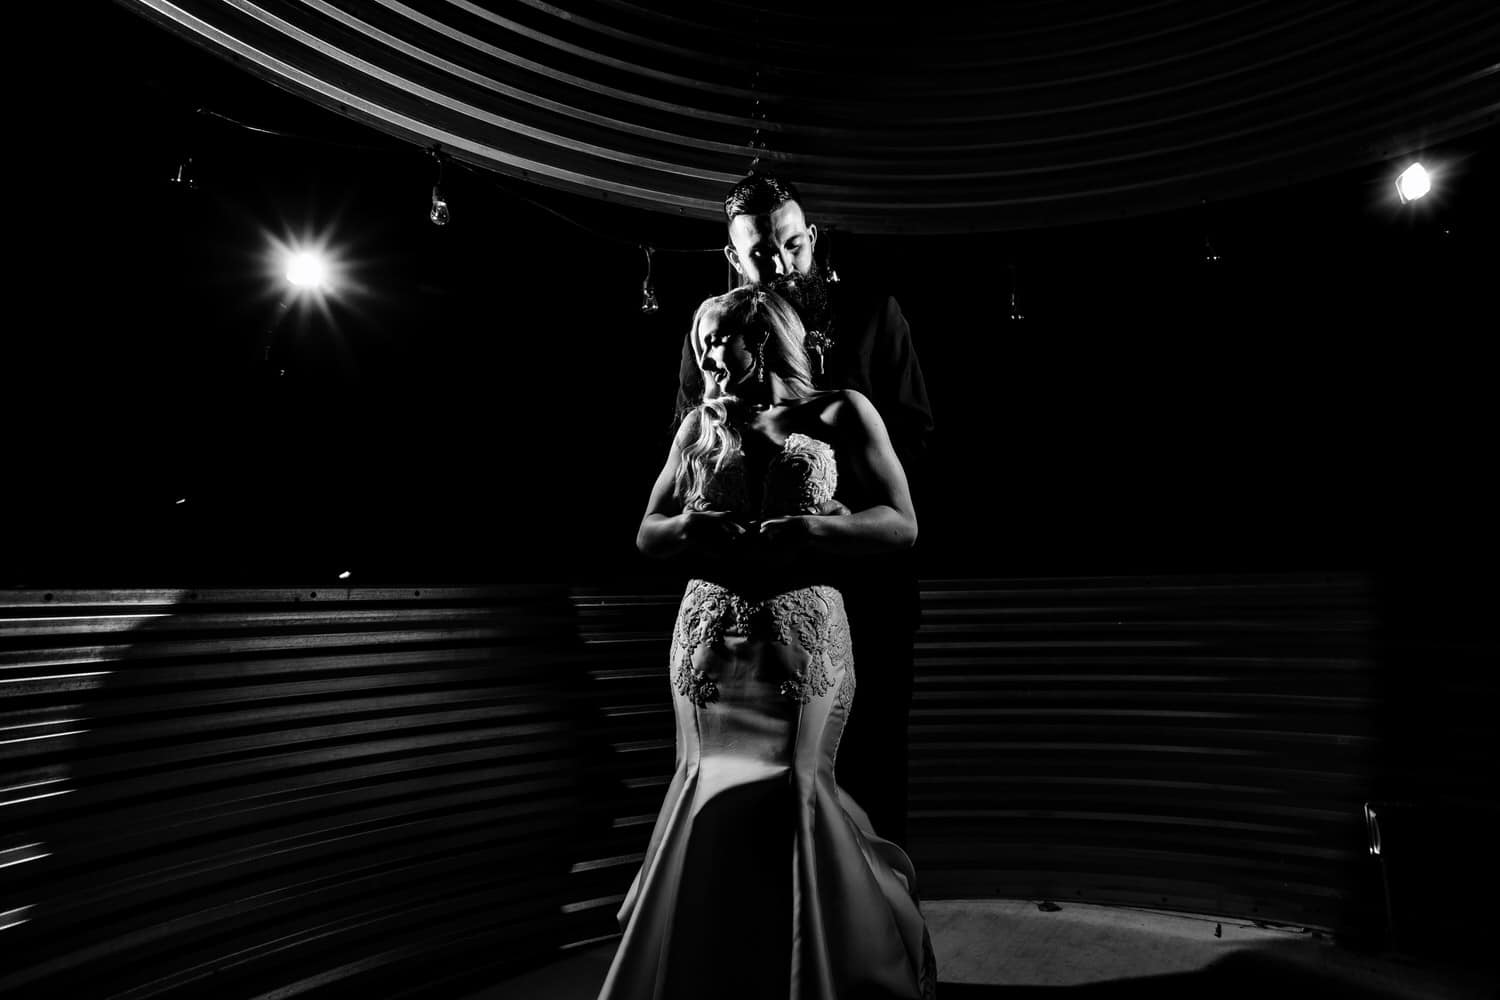 A dramatic black and white picture of a bride and groom sharing an embrace on their wedding night.